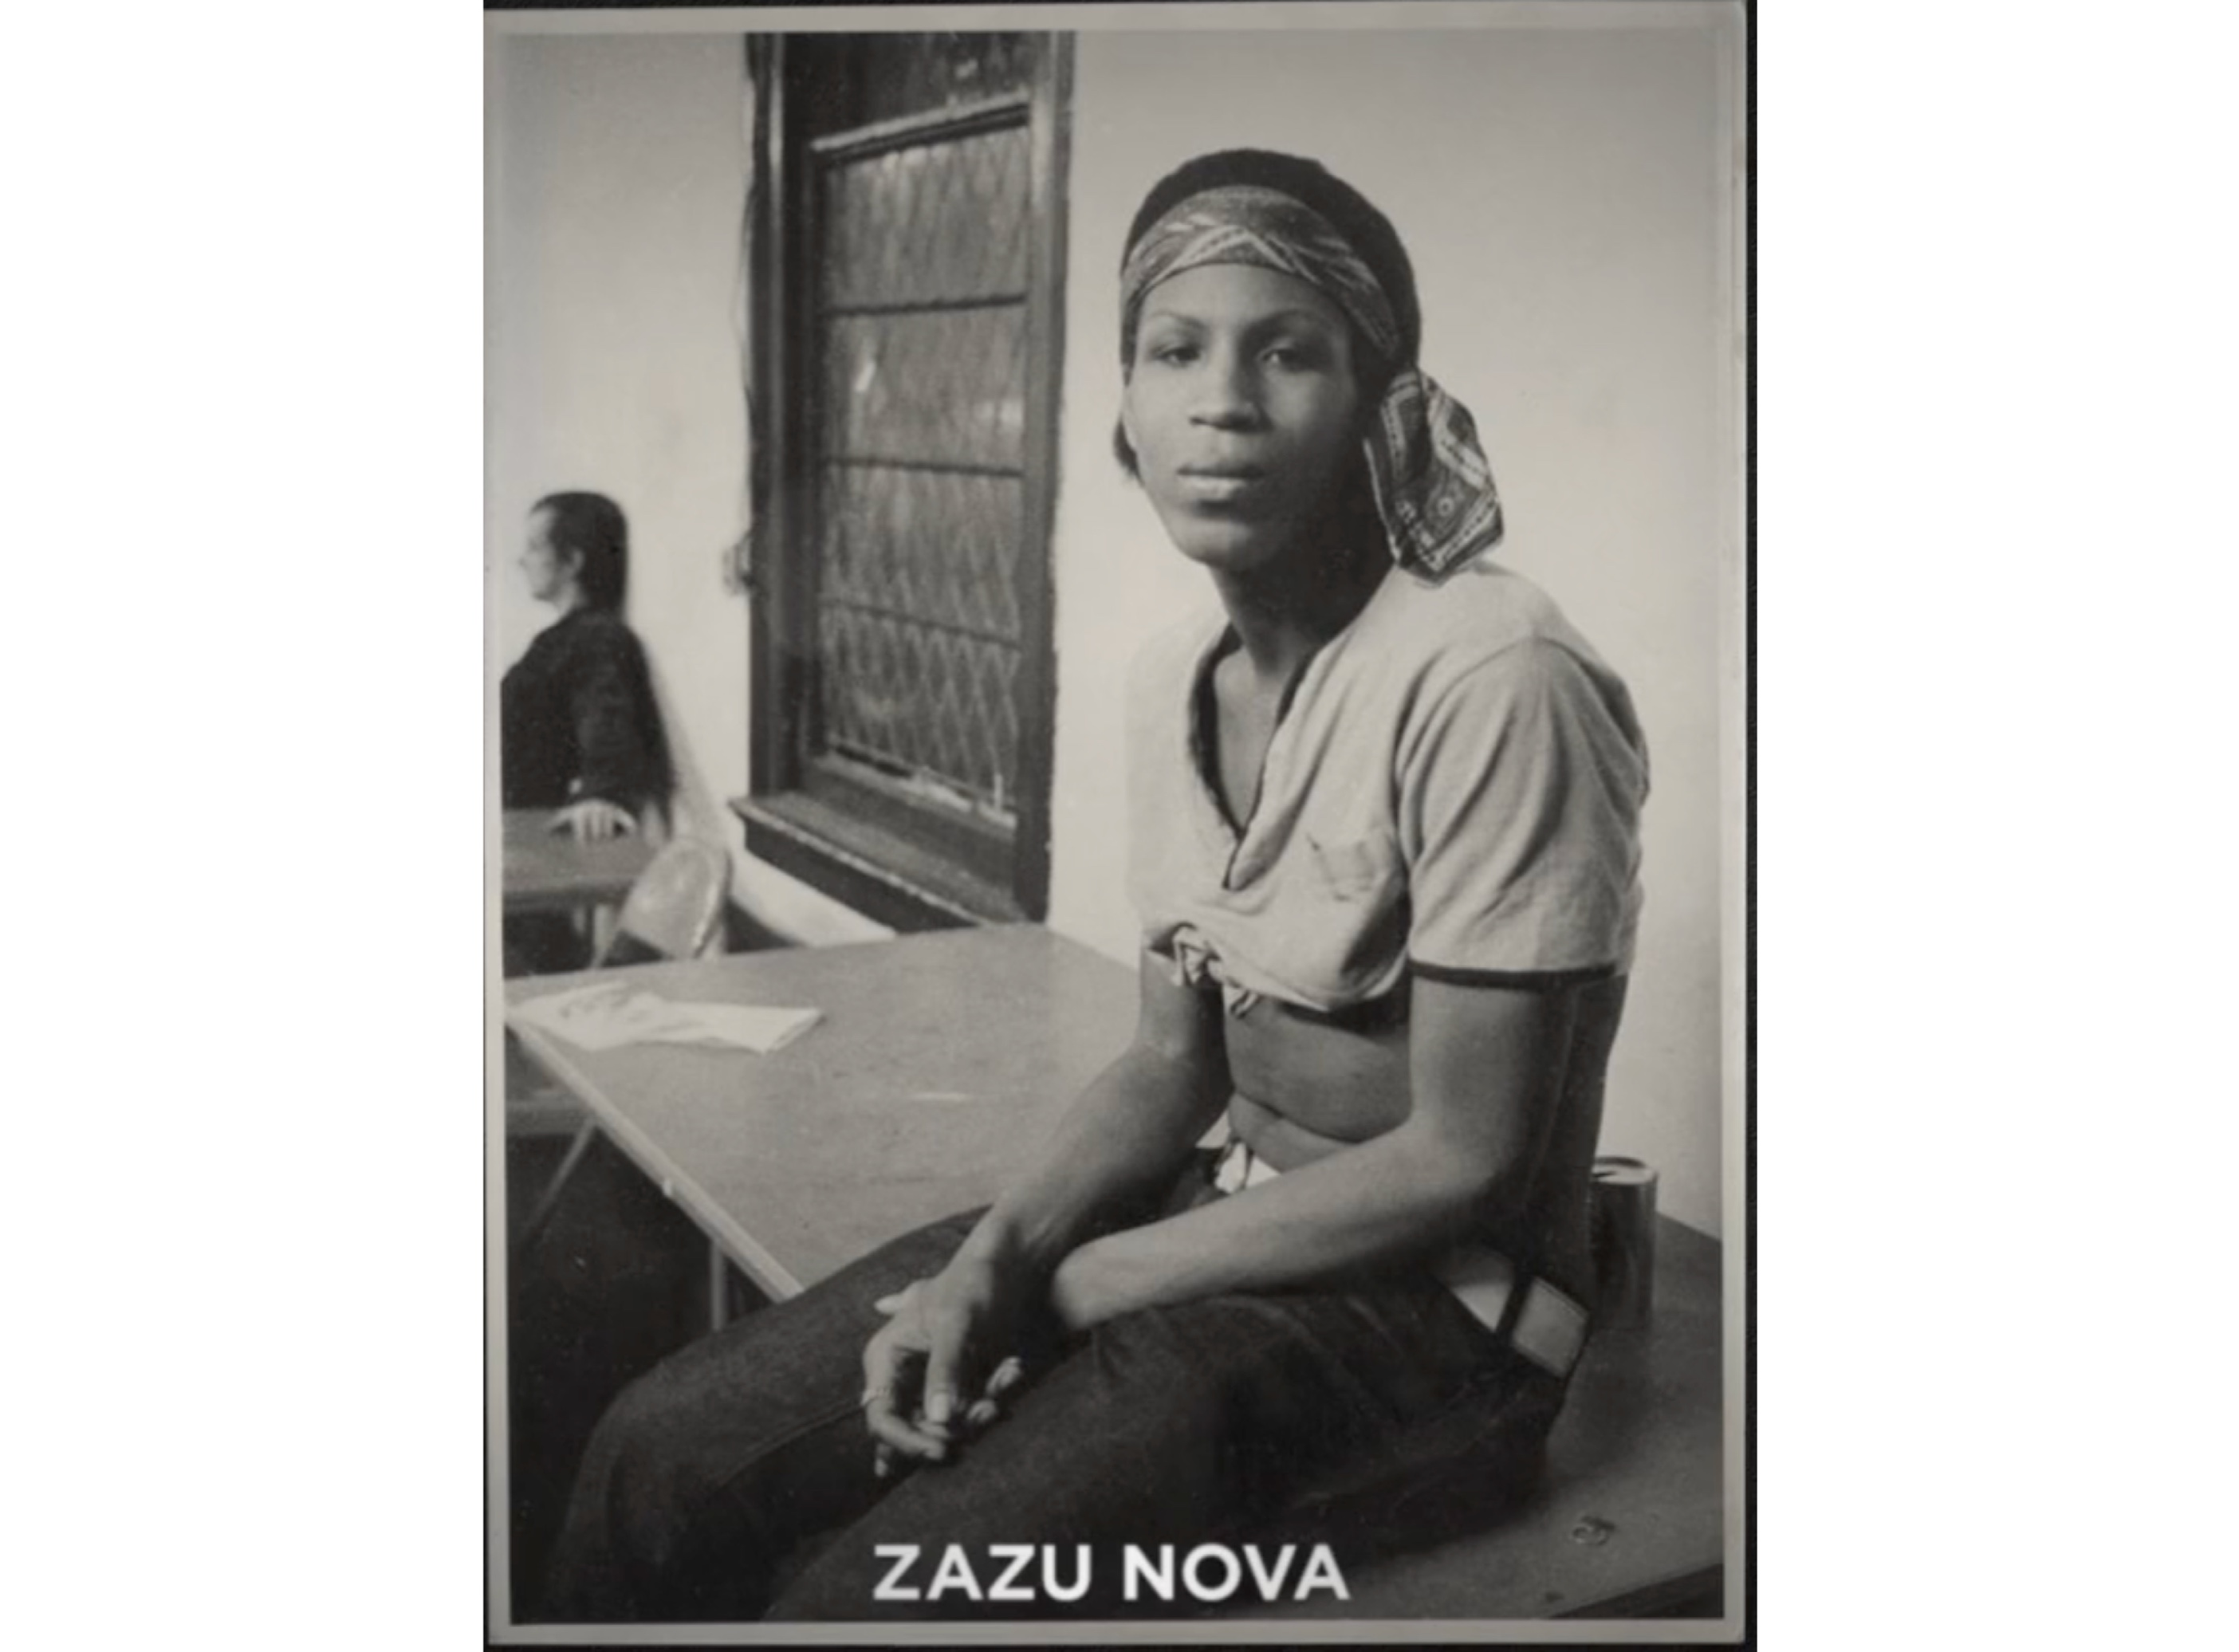 An archival, sepia-toned photo of Zazu Nova perched on a desk, looking serious and casually stylish in a cropped t-shirt and bandana.